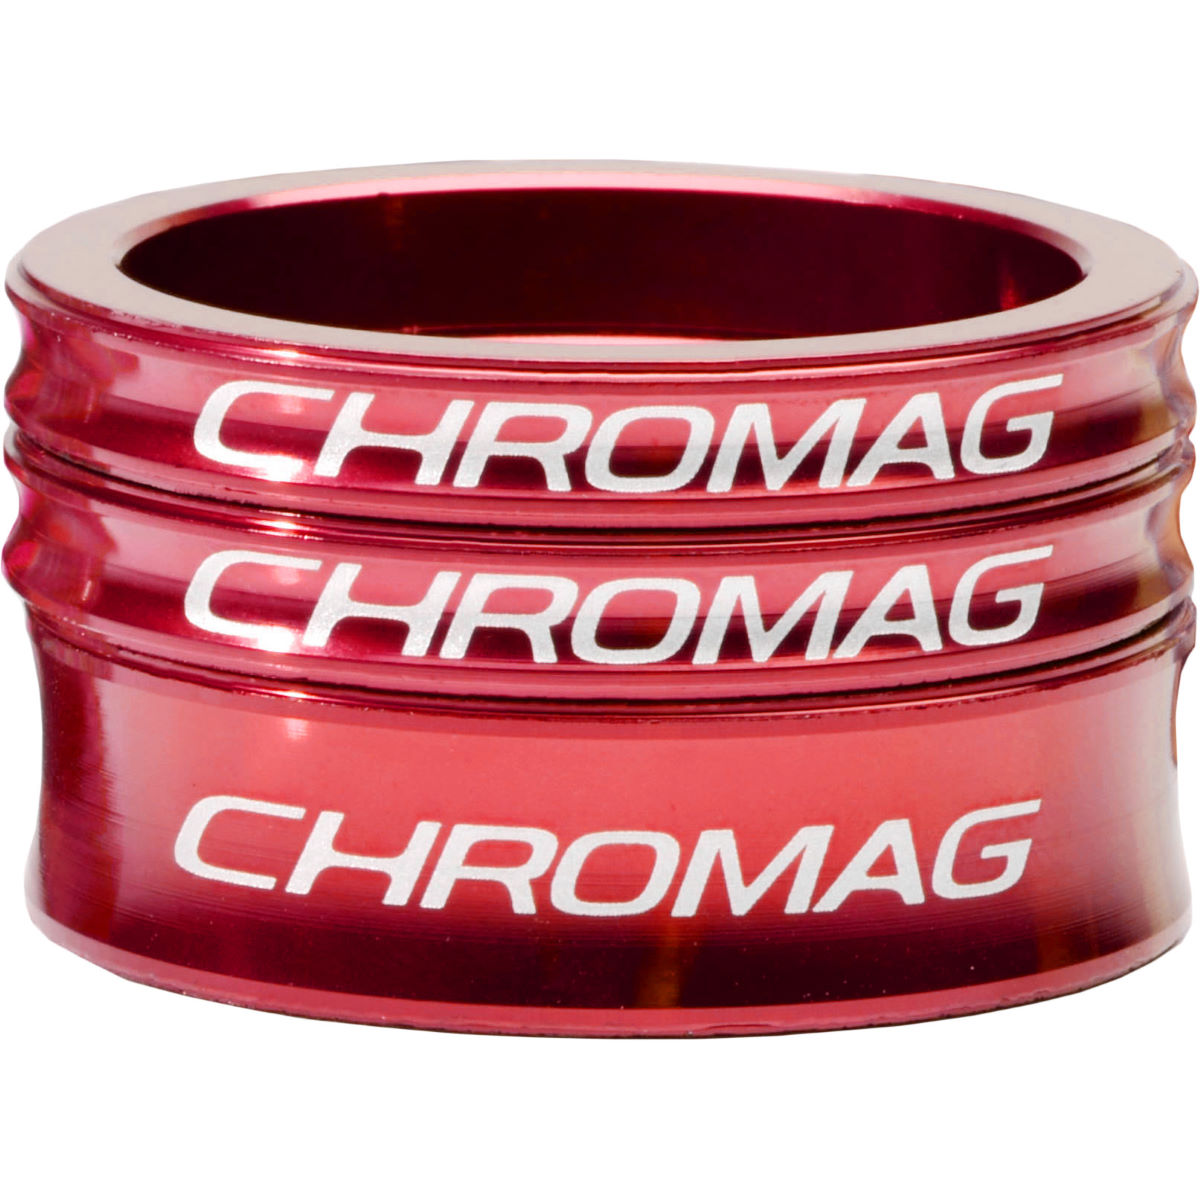 Chromag Headset Spacer Kit - 1.1/8 Red  Headset Spacers